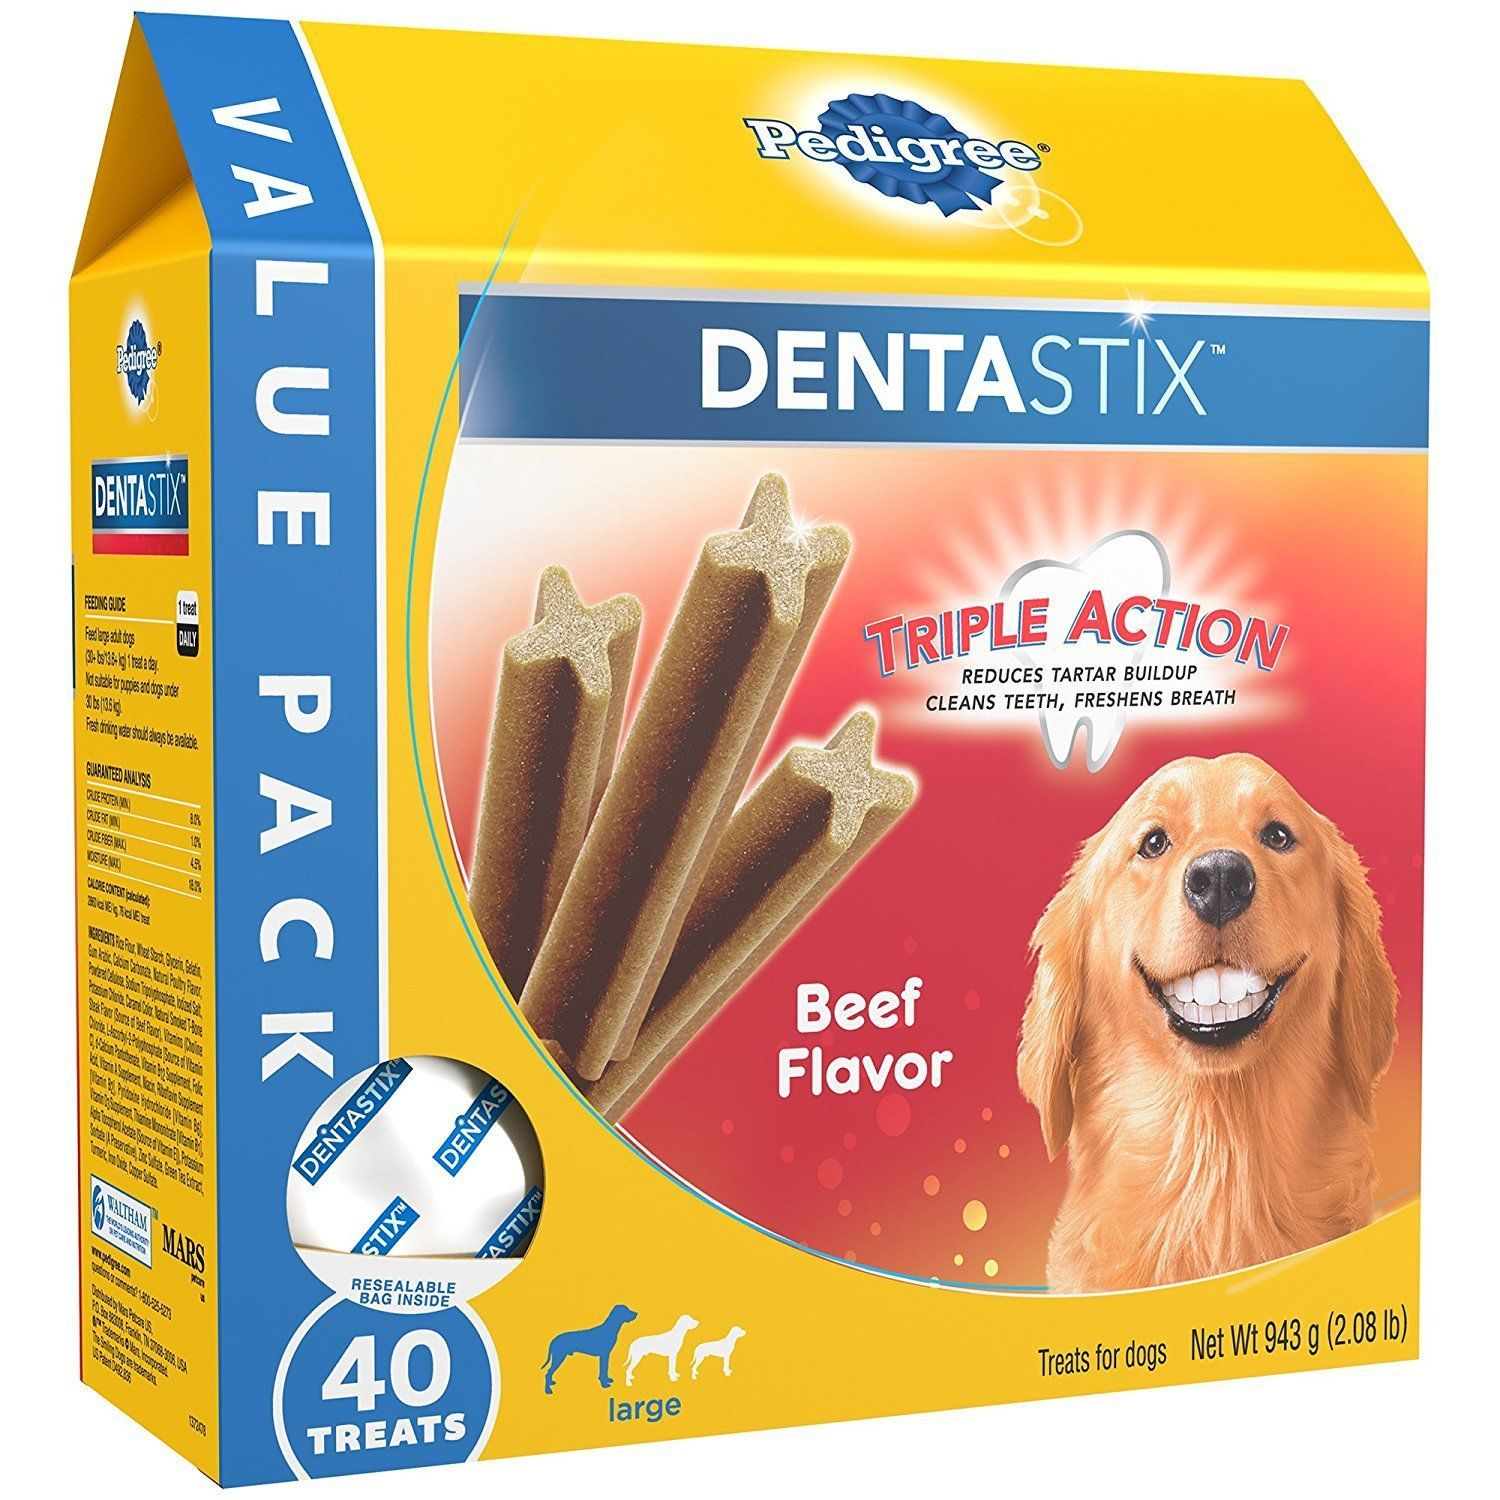 Dog Chews And Treats 77664 Pedigree Dentastix Beef Flavor Large